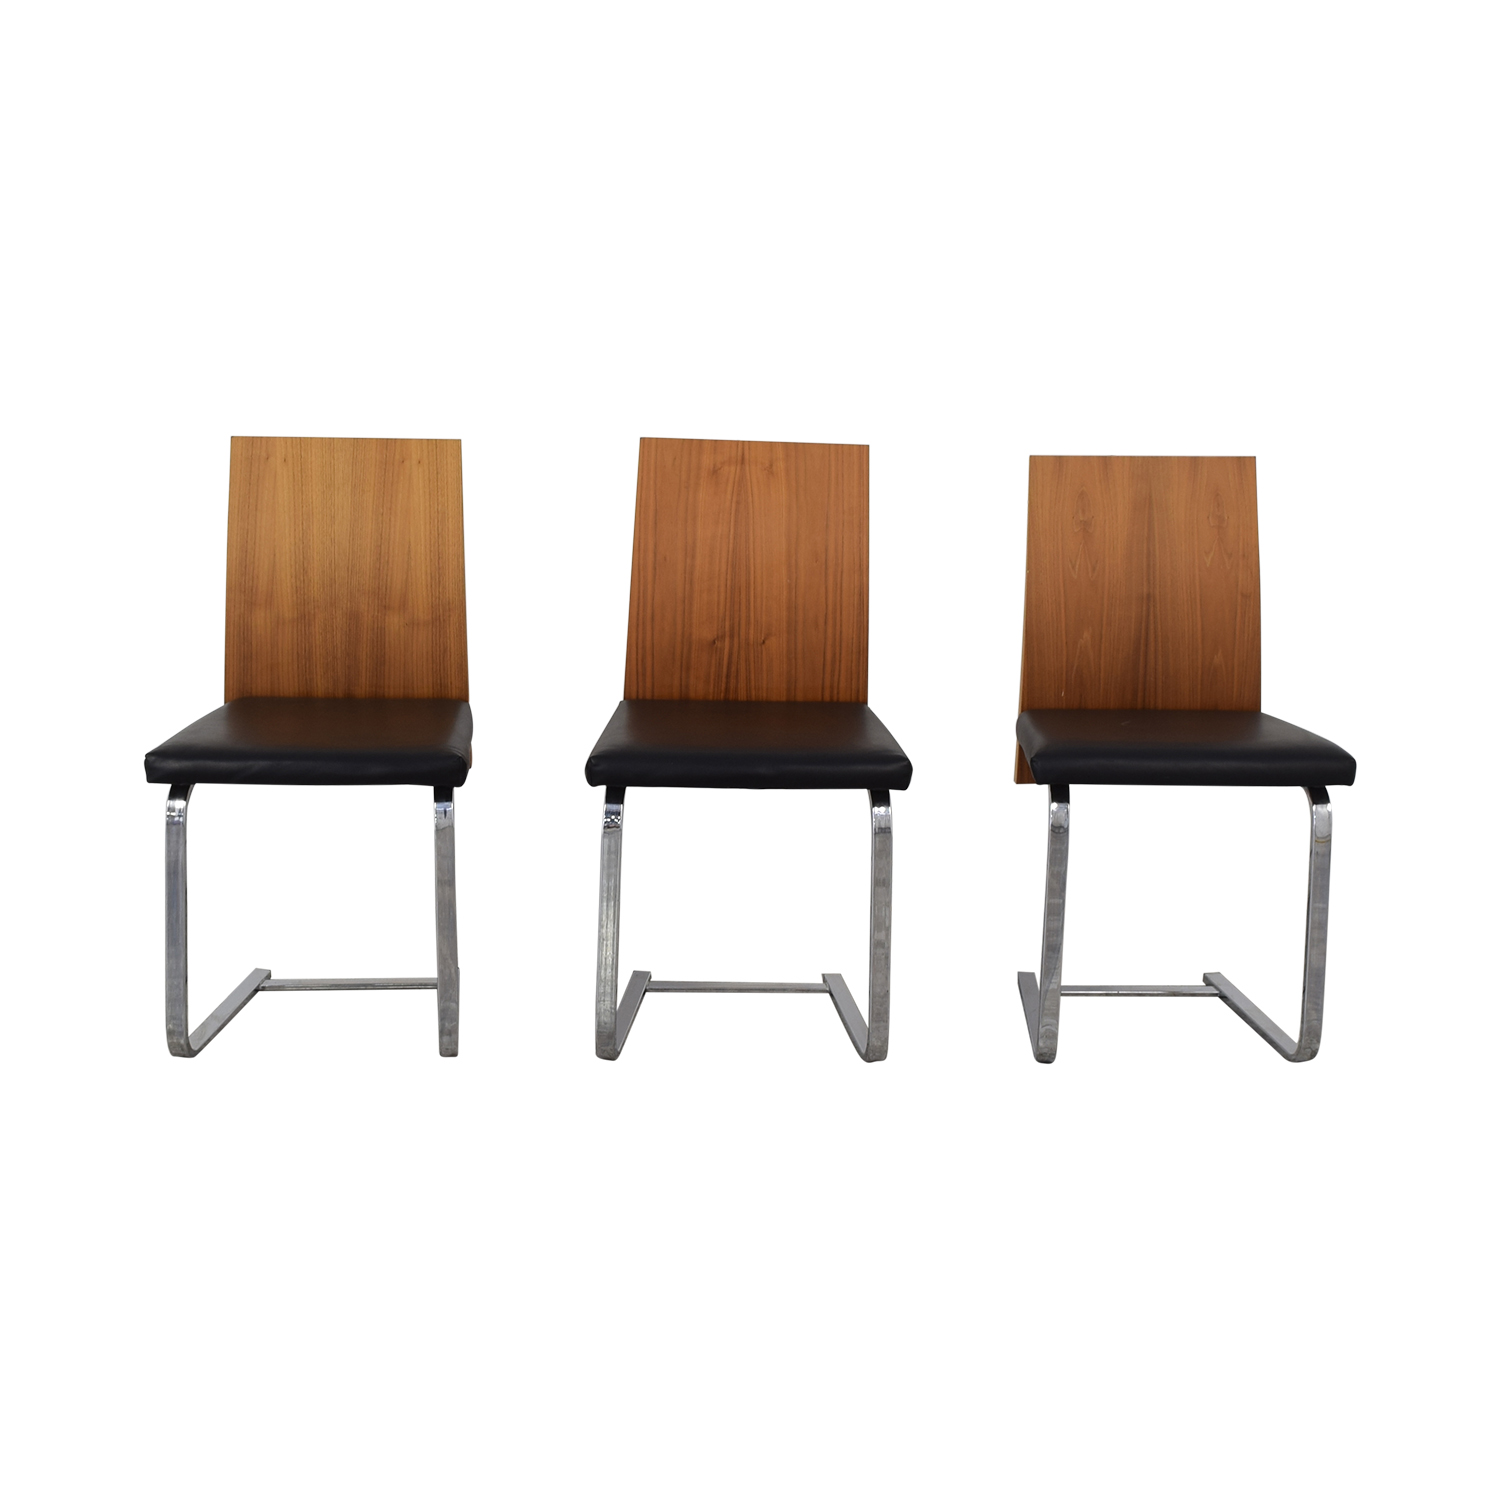 Black Leather Dining Chairs 60 Off Domitalia Domitalia Jeff Sl Chrome Black Leather And Wood Dining Chairs Chairs